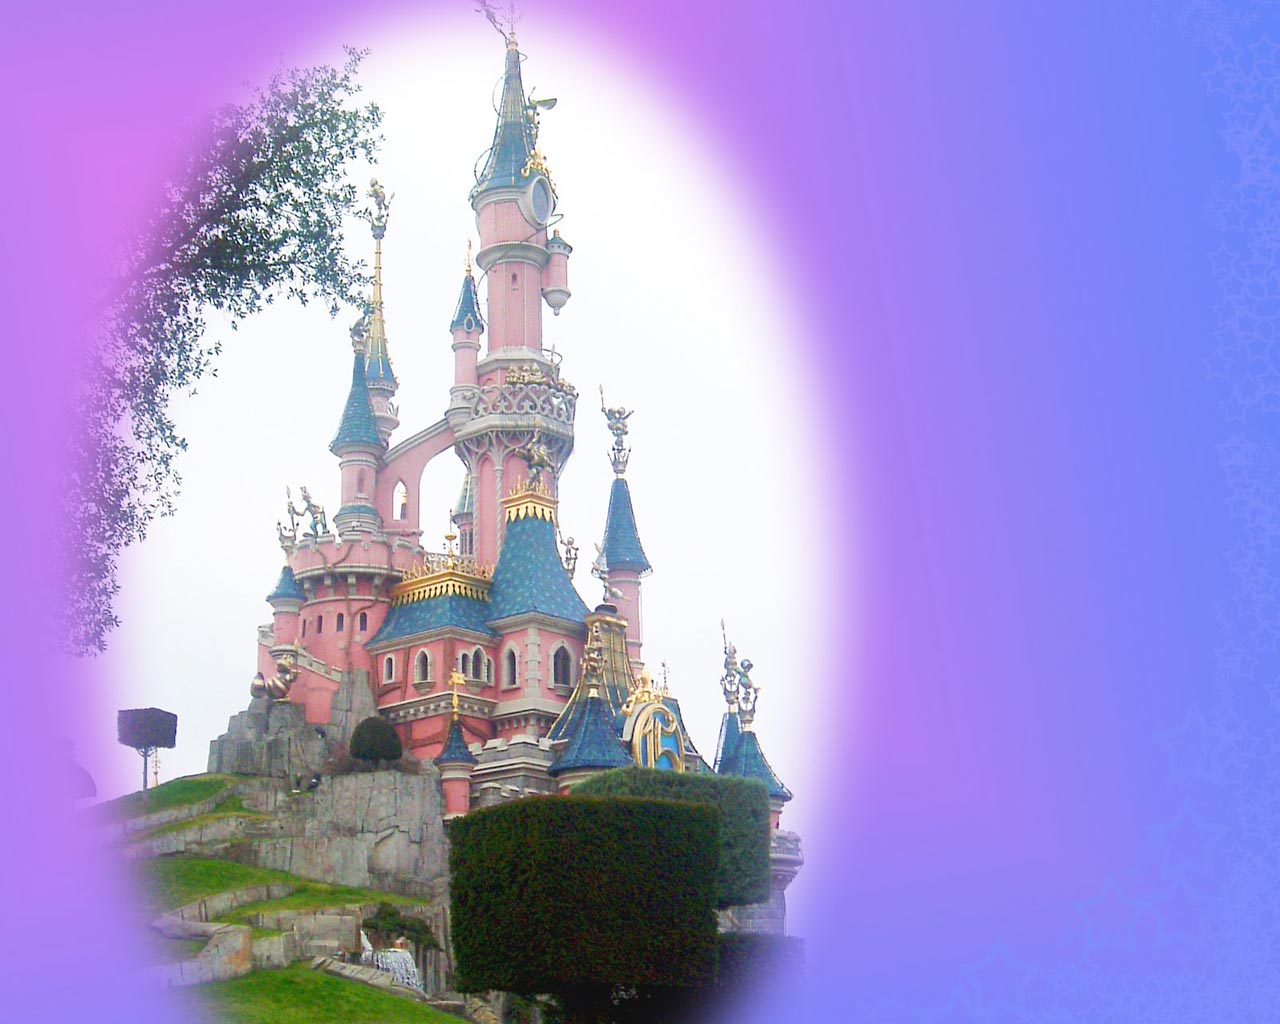 Disney Castle Wallpaper 375 Hd Wallpapers in Cartoons   Imagesci 1280x1024